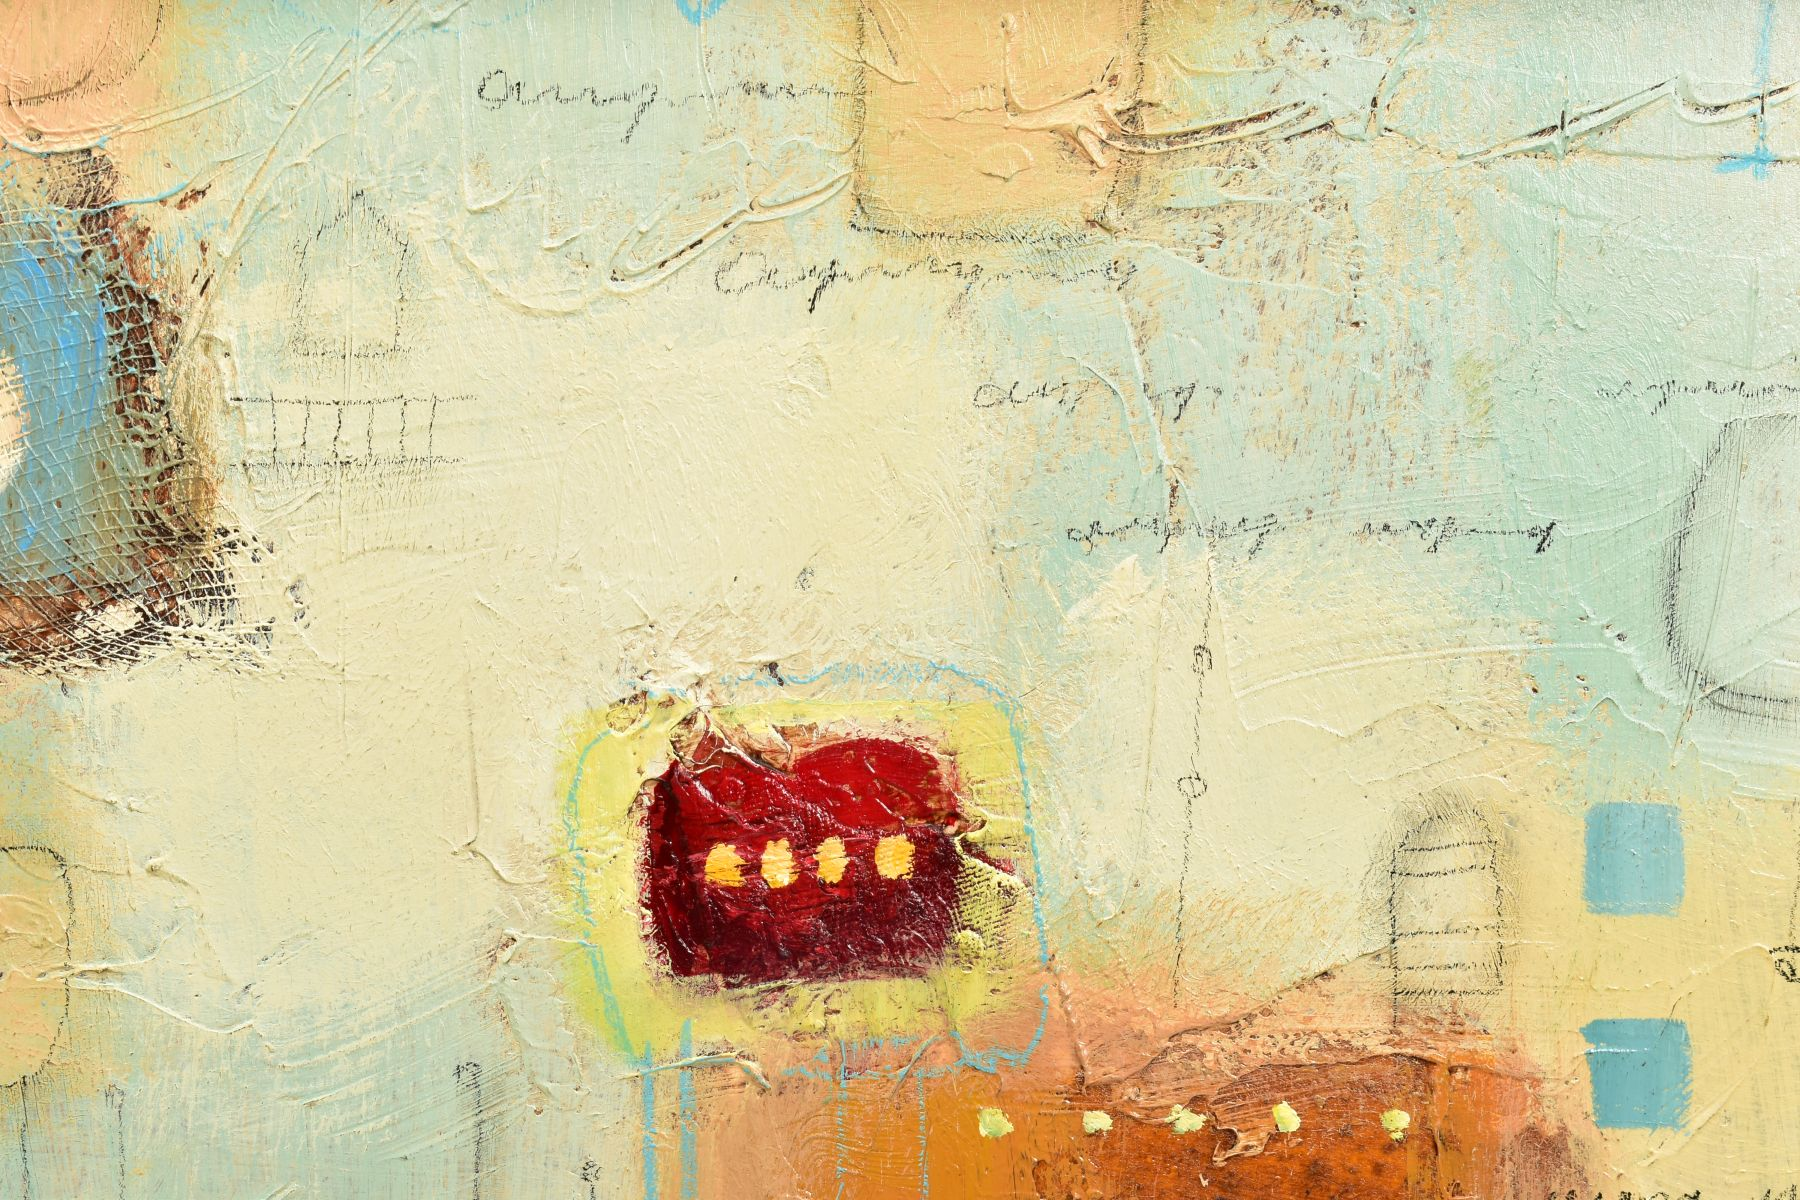 JOHN MILAN (AMERICAN CONTEMPORARY), 'Urban Continuum III', a colourful abstract composition, - Image 3 of 6